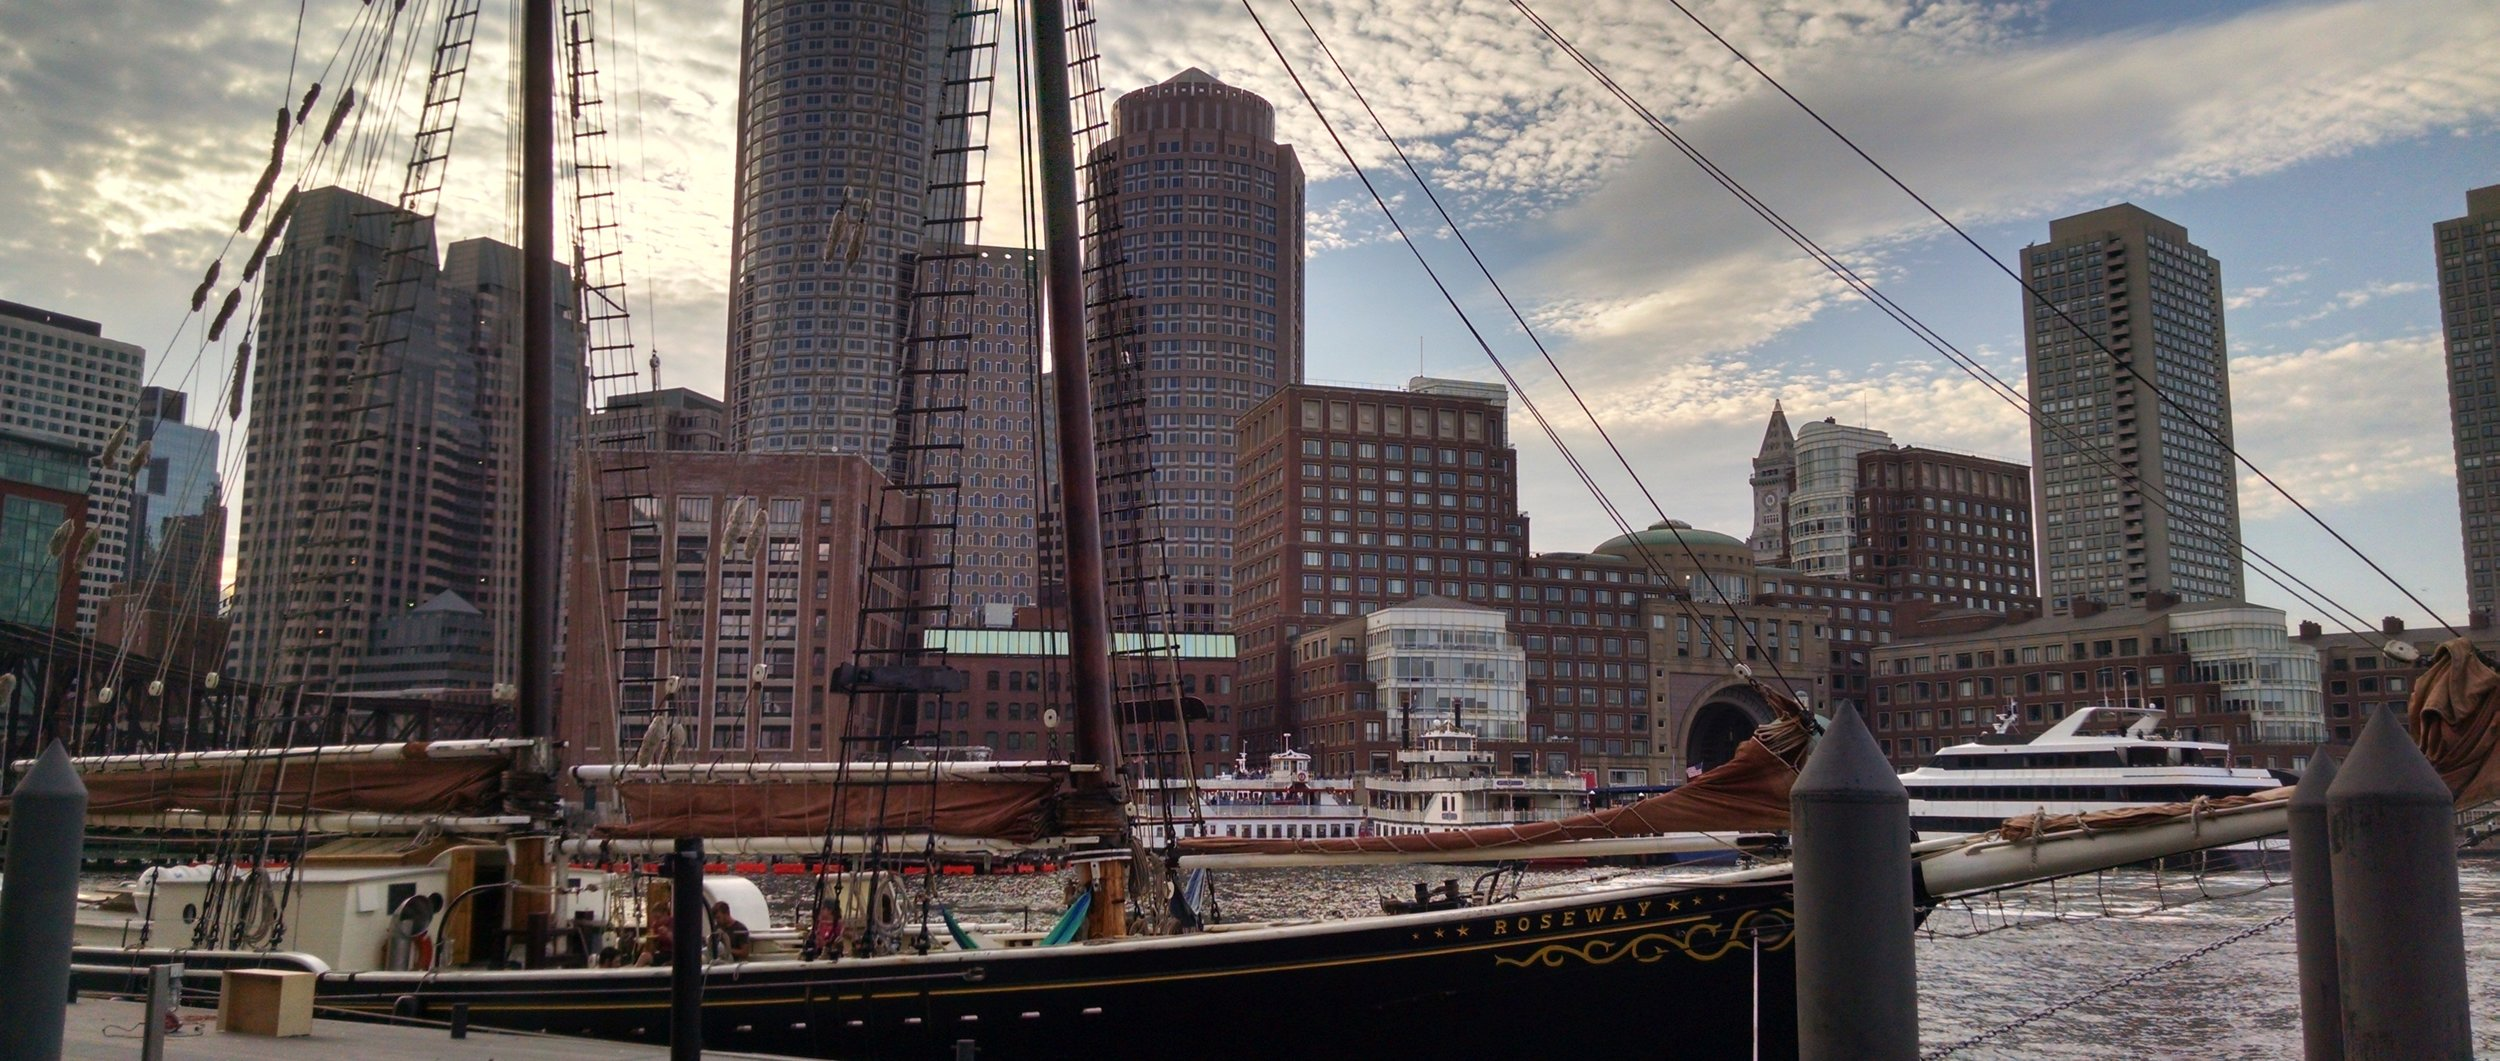 Image: The Boston Harbor and part of the skyline, with the tall ship Roseway in the foreground and modern yachts visible in the background.